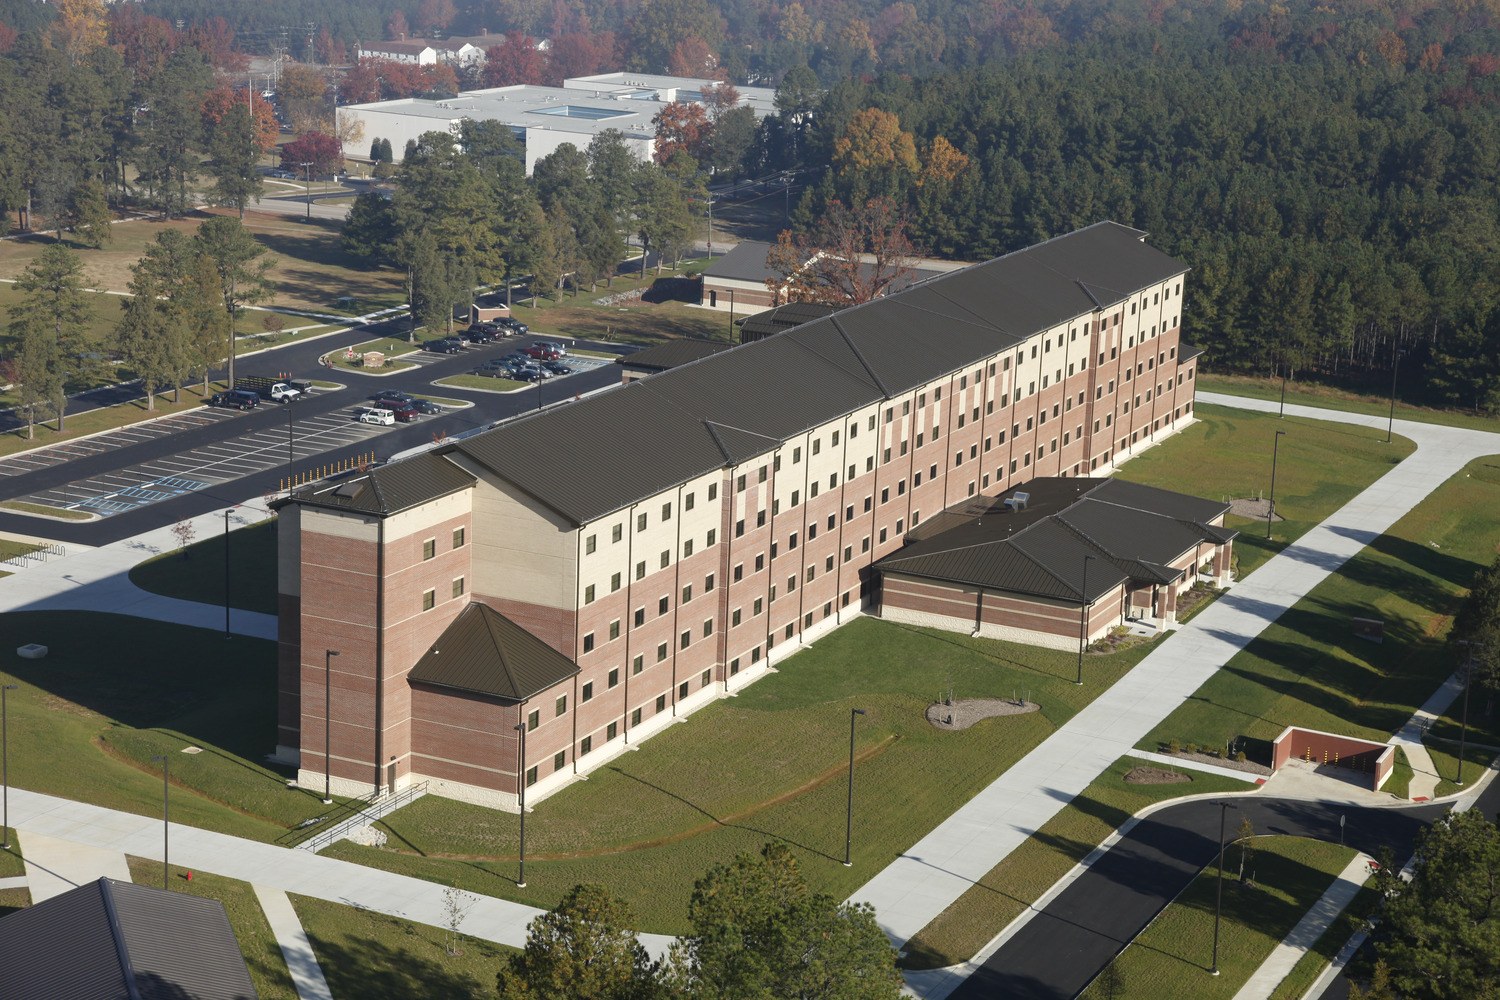 CBG builds Fort Lee AIT Barracks, a 600-Unit Advanced Individual Training Facility and Residential Complex in Fort Lee, VA - Image #9